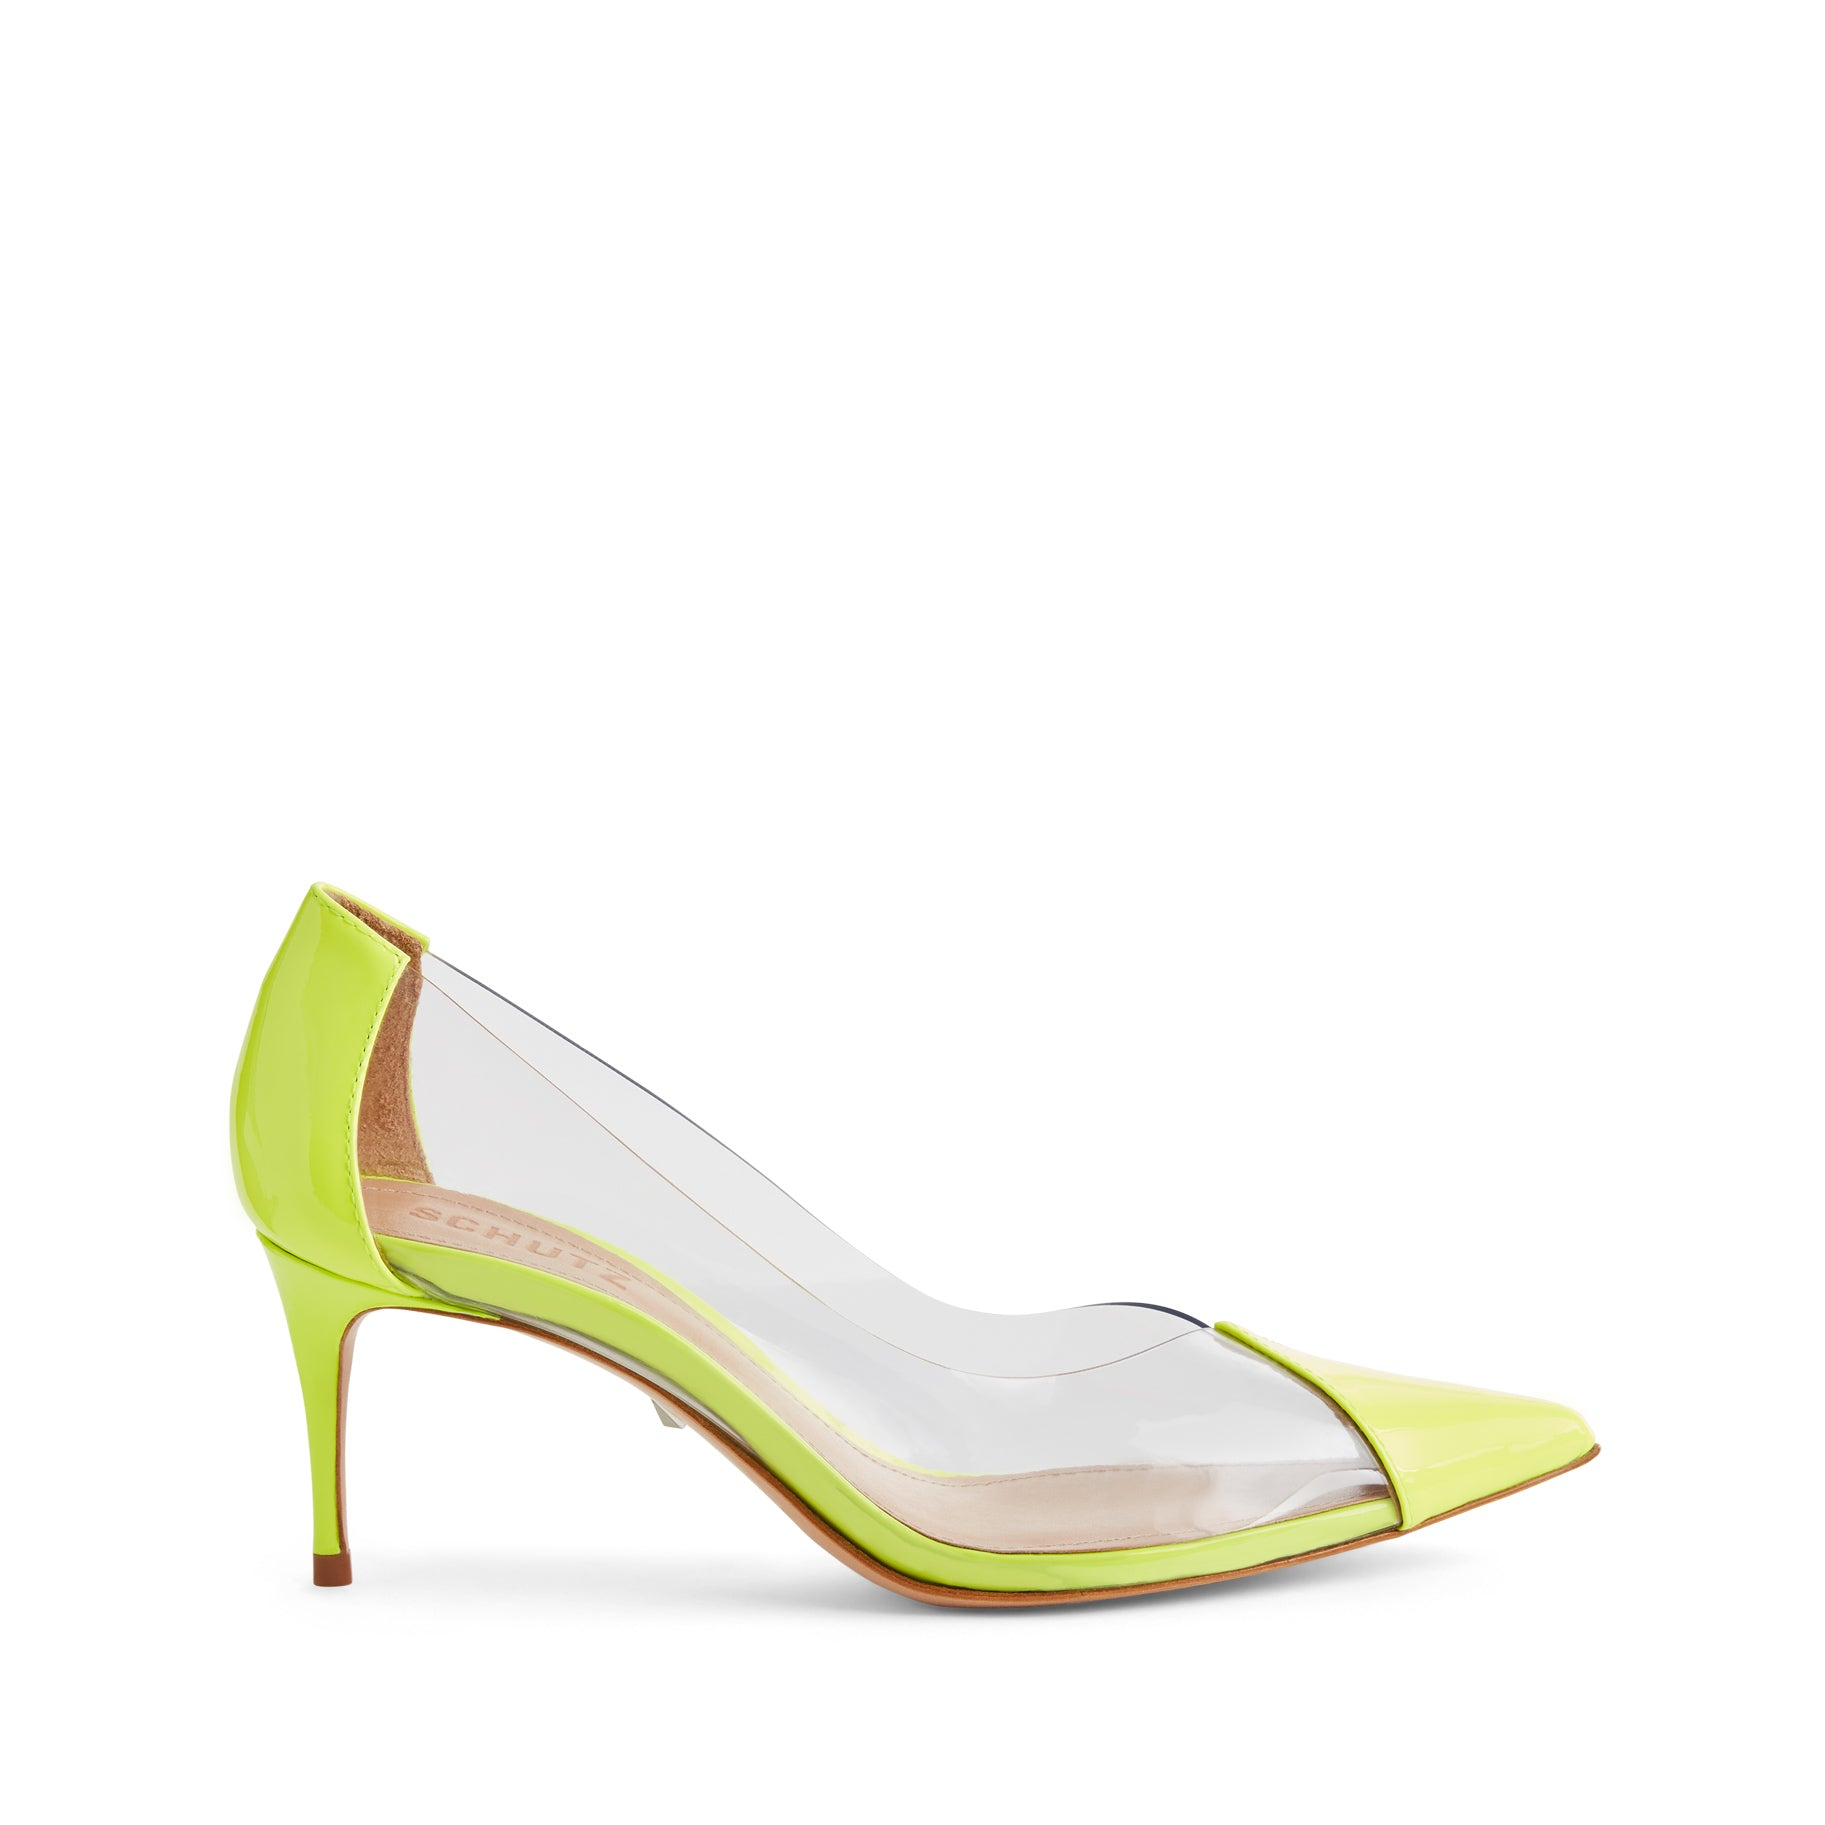 Garthy Pumps - Neon Yellow Patent Leather & Vinyl